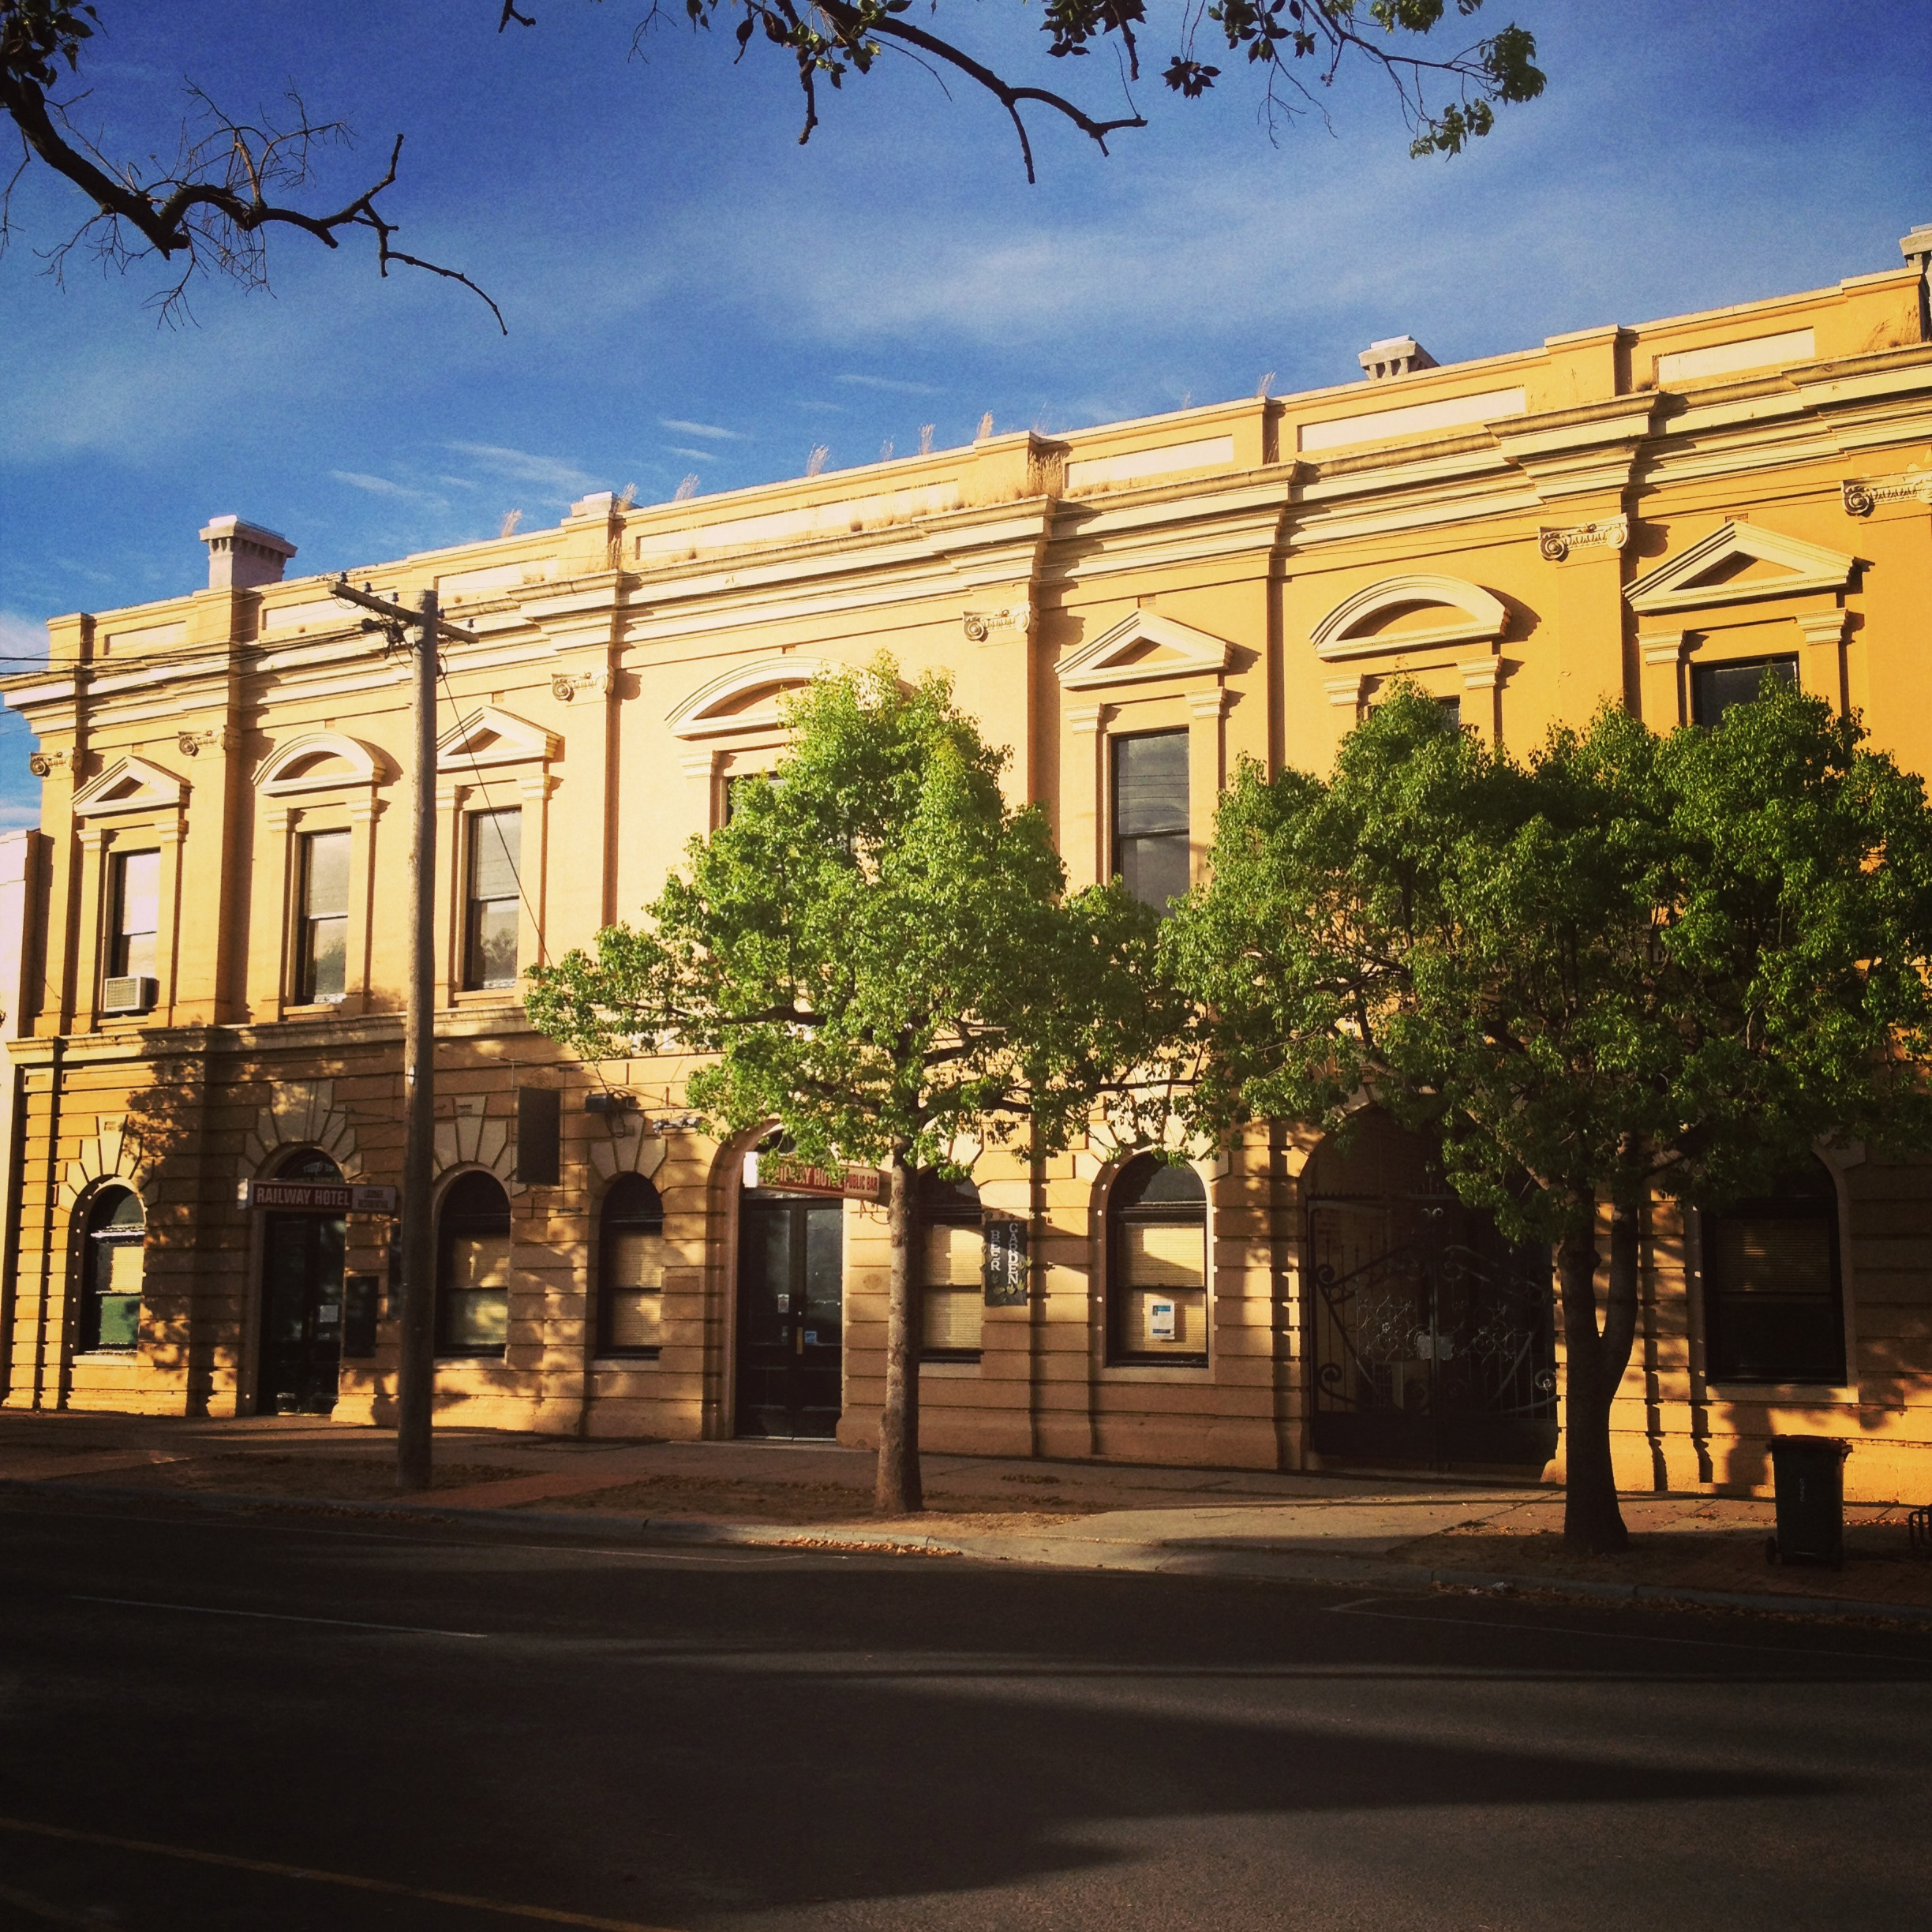 Railway Hotel Dunolly - Geraldton Accommodation